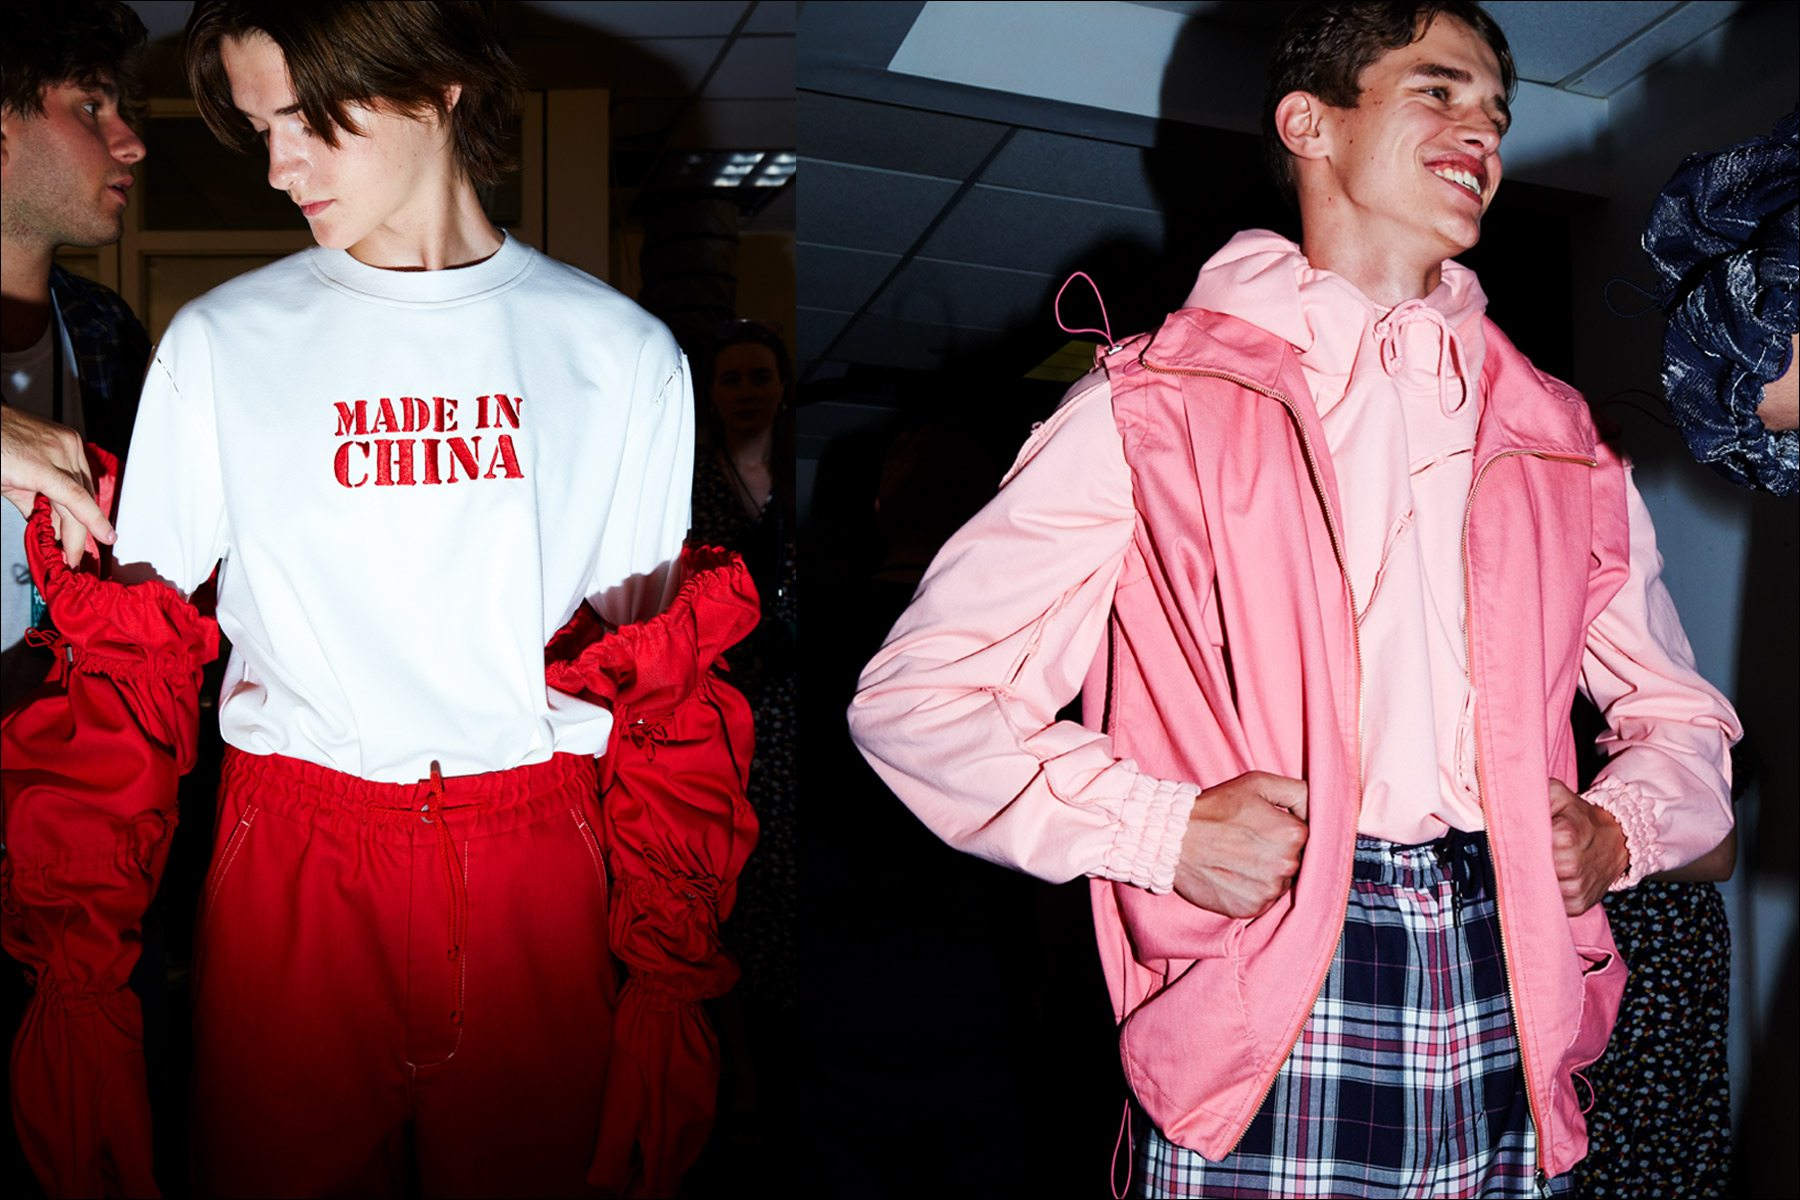 Made In China. Backstage at the Feng Chen Wang menswear show. Photographed by Alexander Thompson for Ponyboy magazine NY.